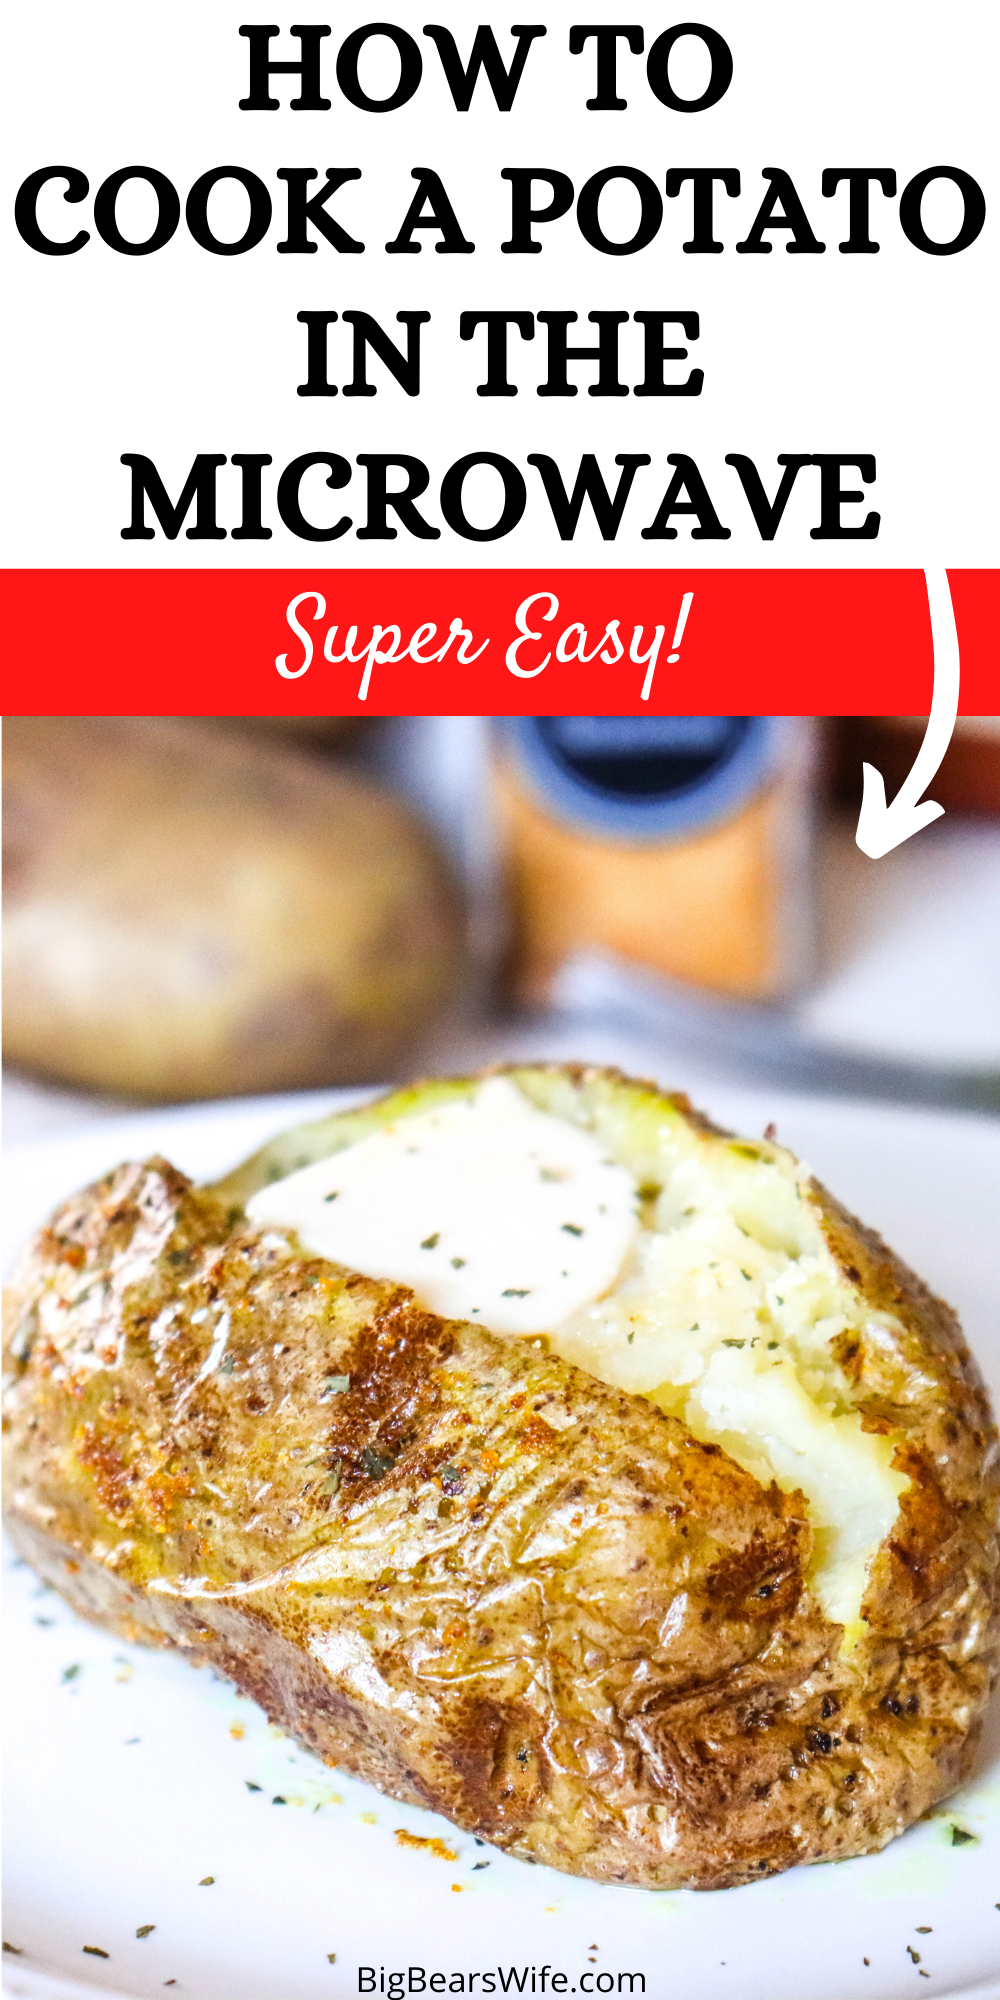 Love Baked Potatoes but short on time? No problem! I'll show you How to Cook a Potato in the Microwave in 5-10 minutes! via @bigbearswife